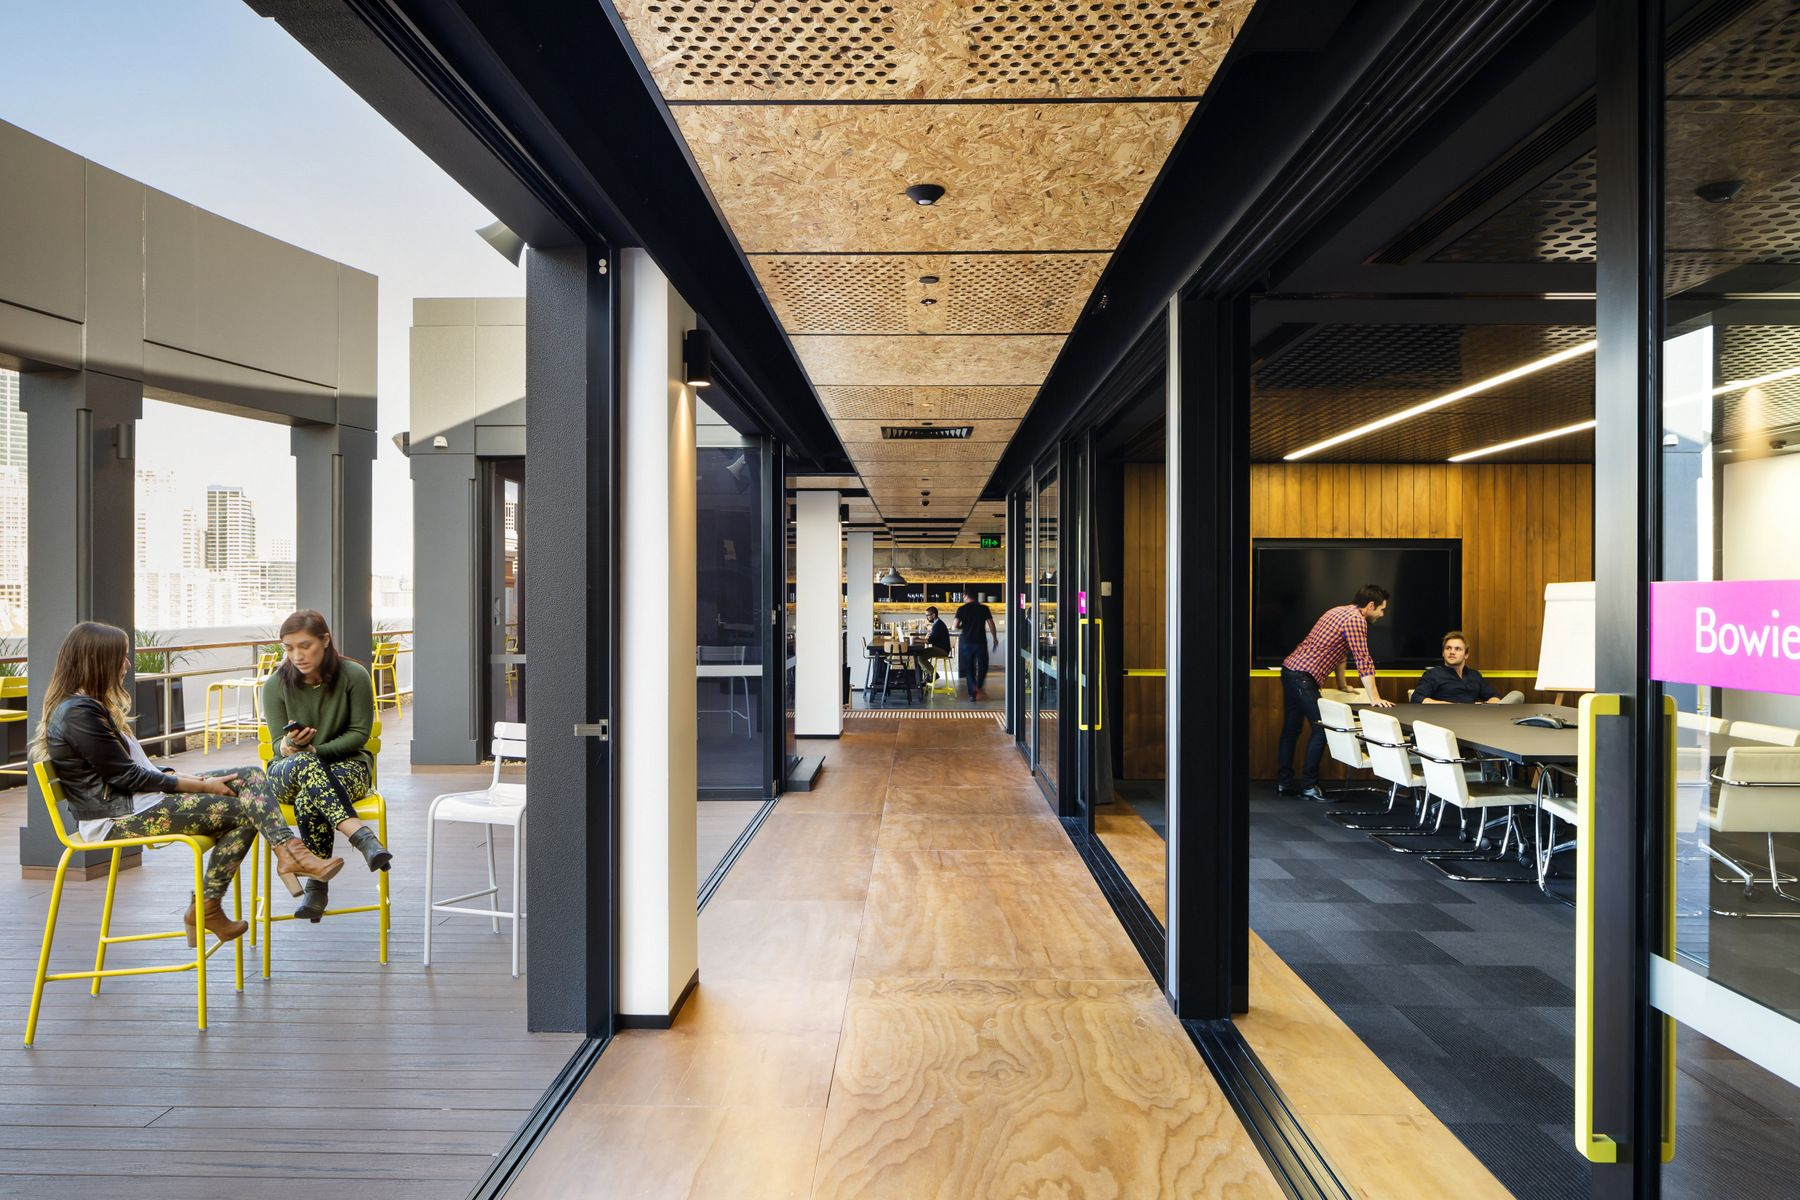 jwt new york office. australian interior design awards the best workplace designs in australia jwt sydney by geyer activity based working offices pinterest jwt new york office